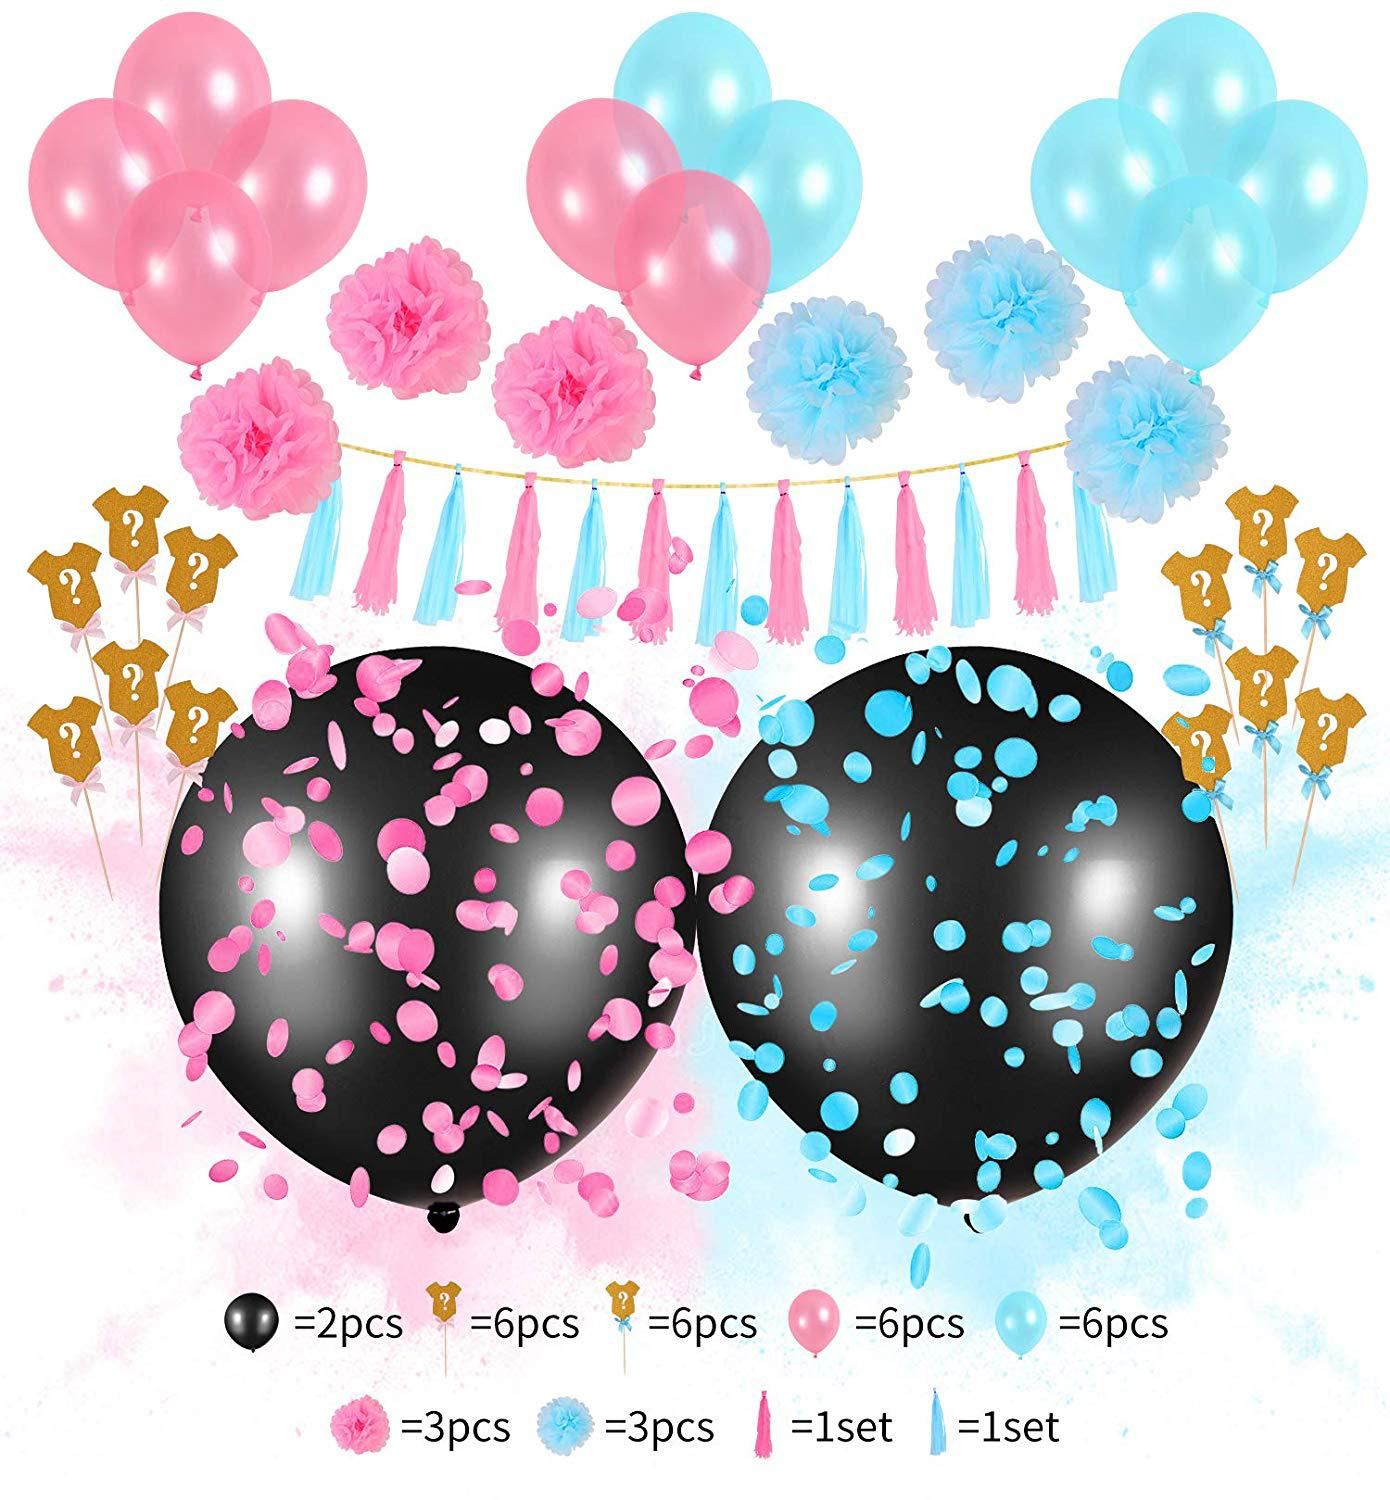 12 Inch 36 Inch Latex Free Balloon Gender Reveal Party Supplies Kit Baby Shower Decorations with Paper Tassel